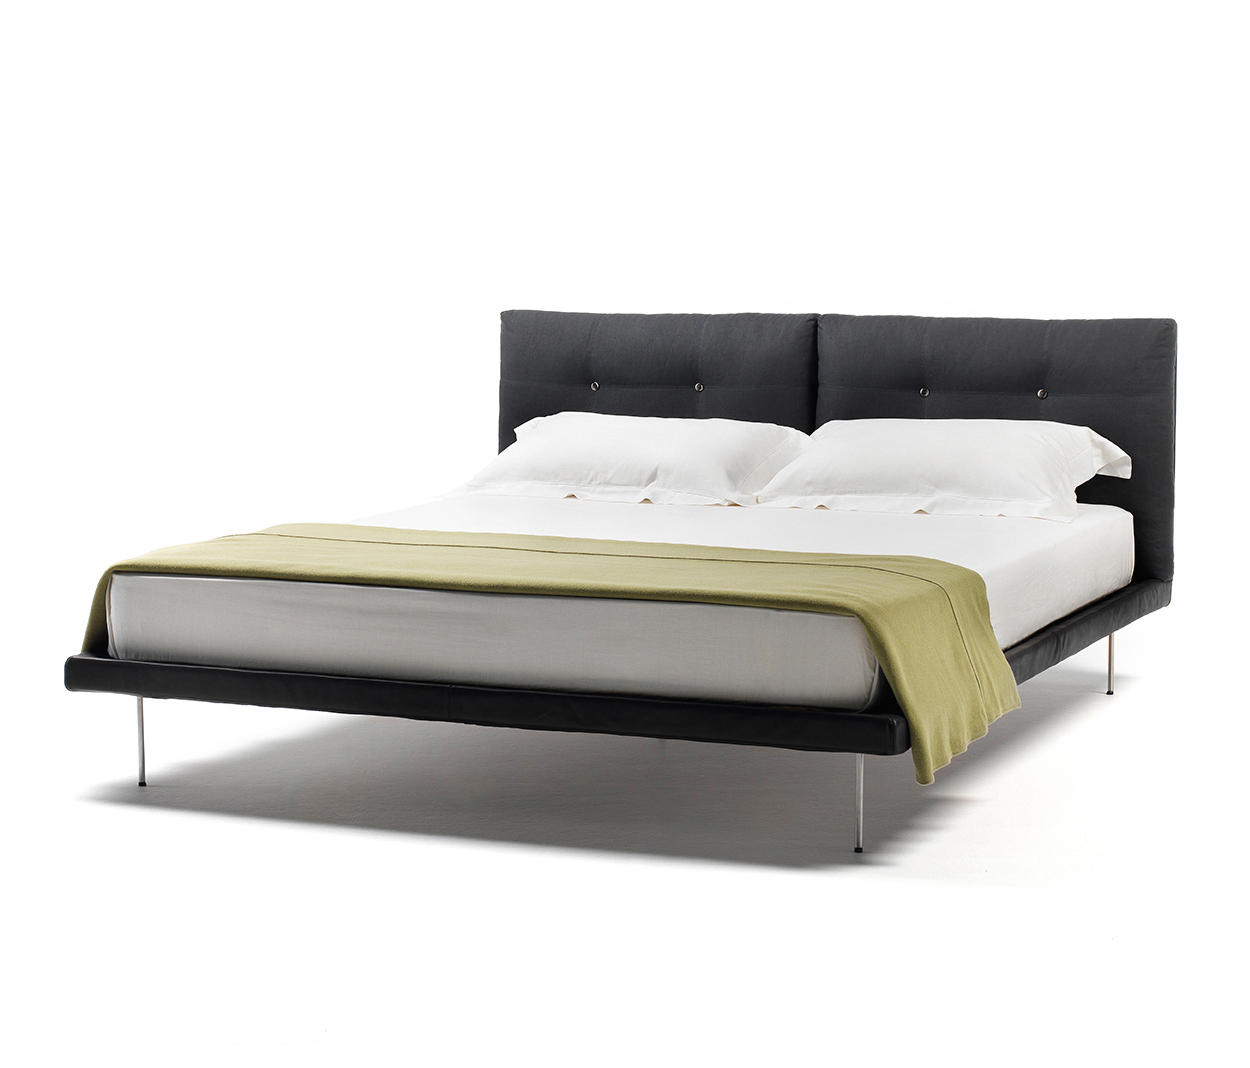 ROD BED Double Beds From Living Divani Architonic